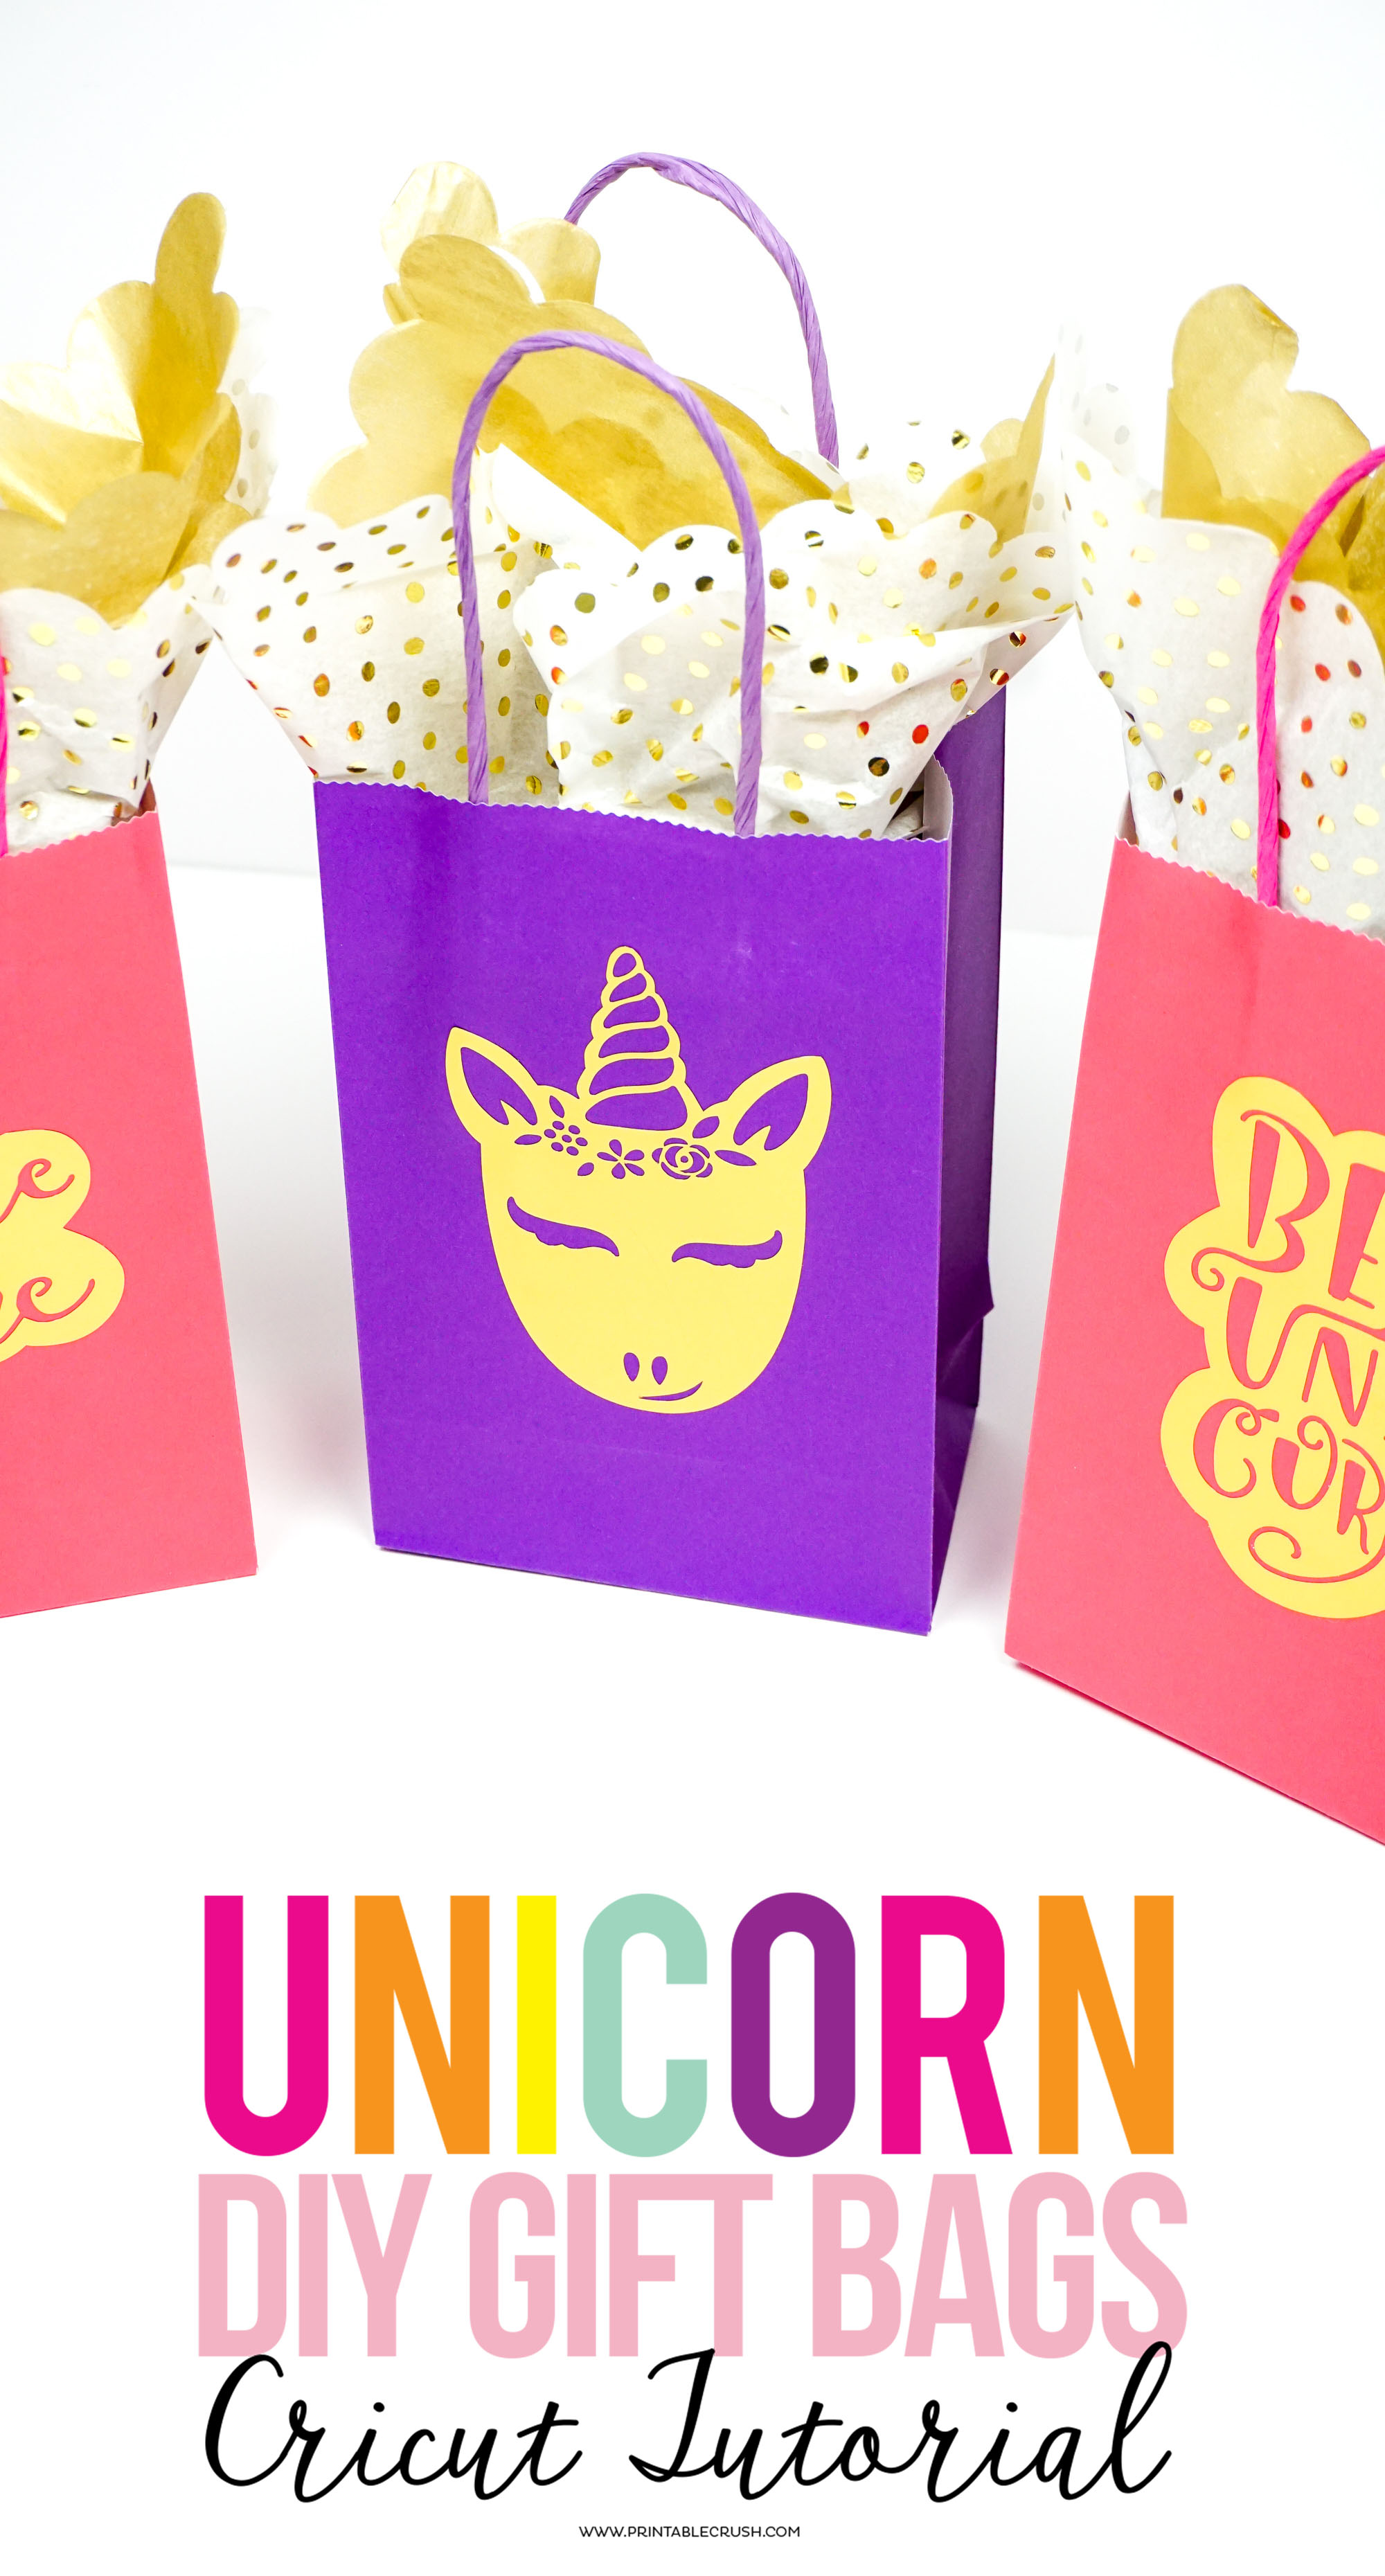 These Gold Foil DIY Unicorn Gift Bags add a personal touch to birthday parties. Use them for party favors, teacher gifts, birthday gifts, and more!